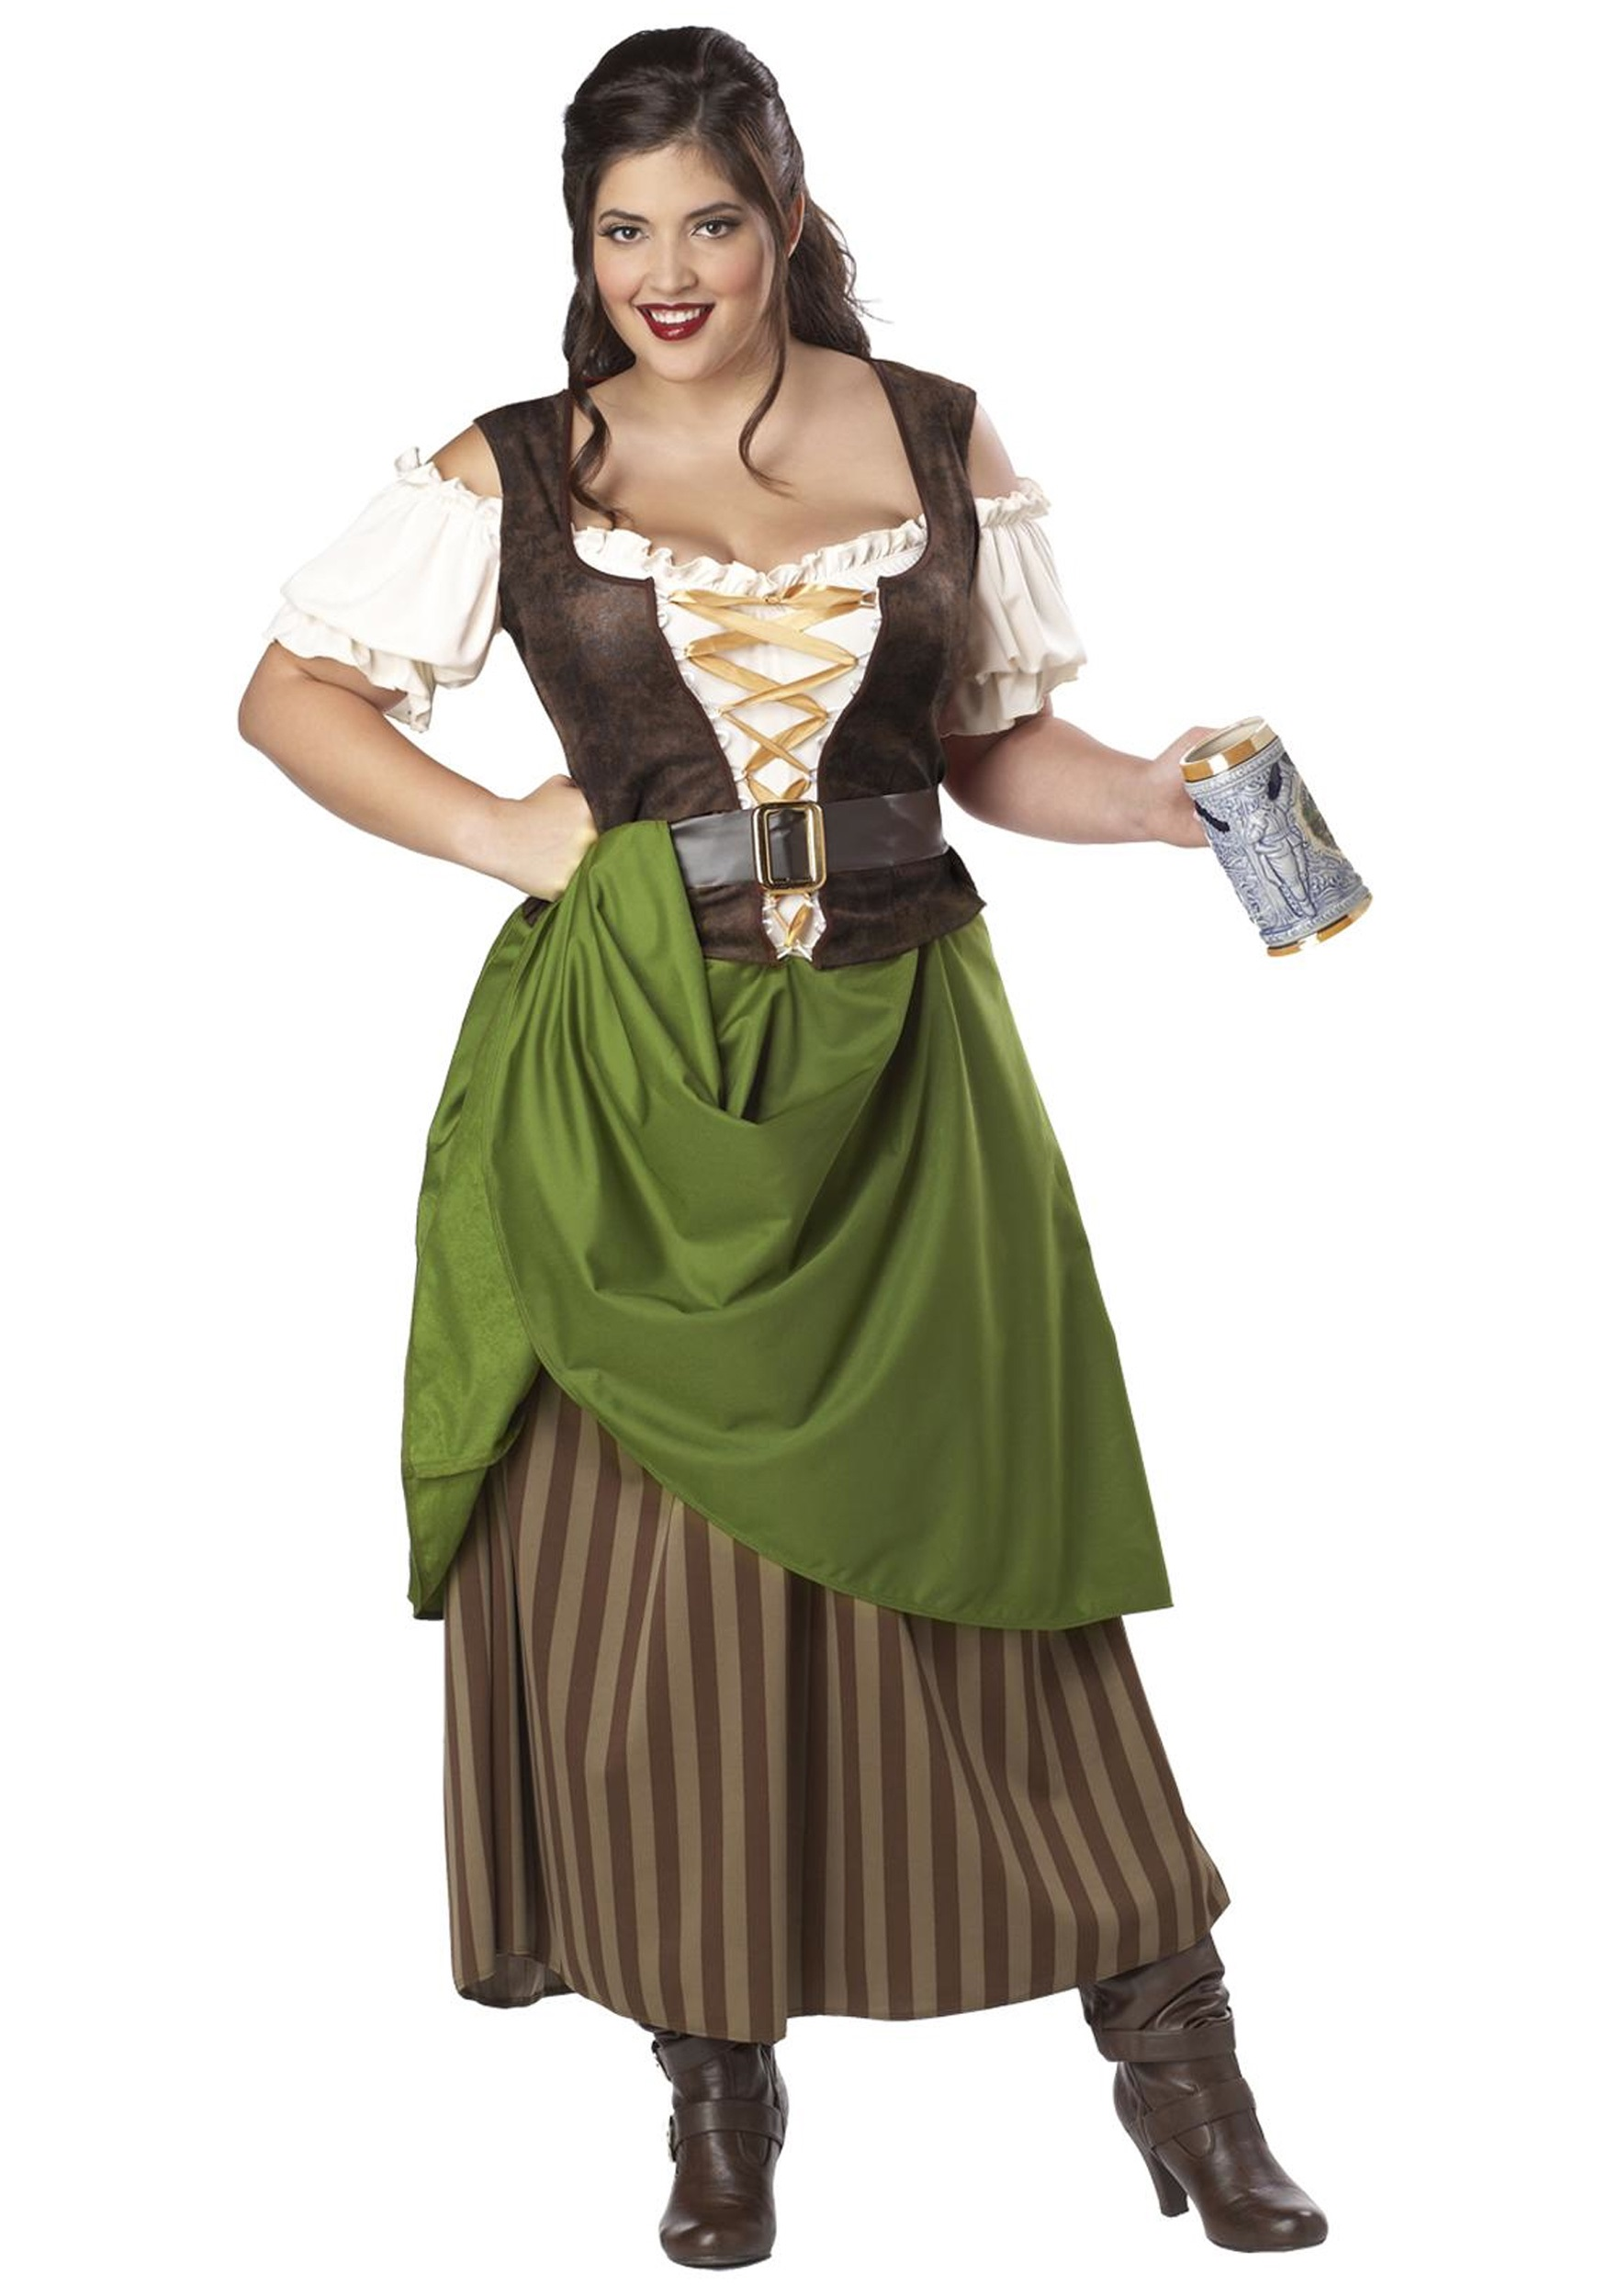 Plus Size Halloween Costumes - HalloweenCostumes.com